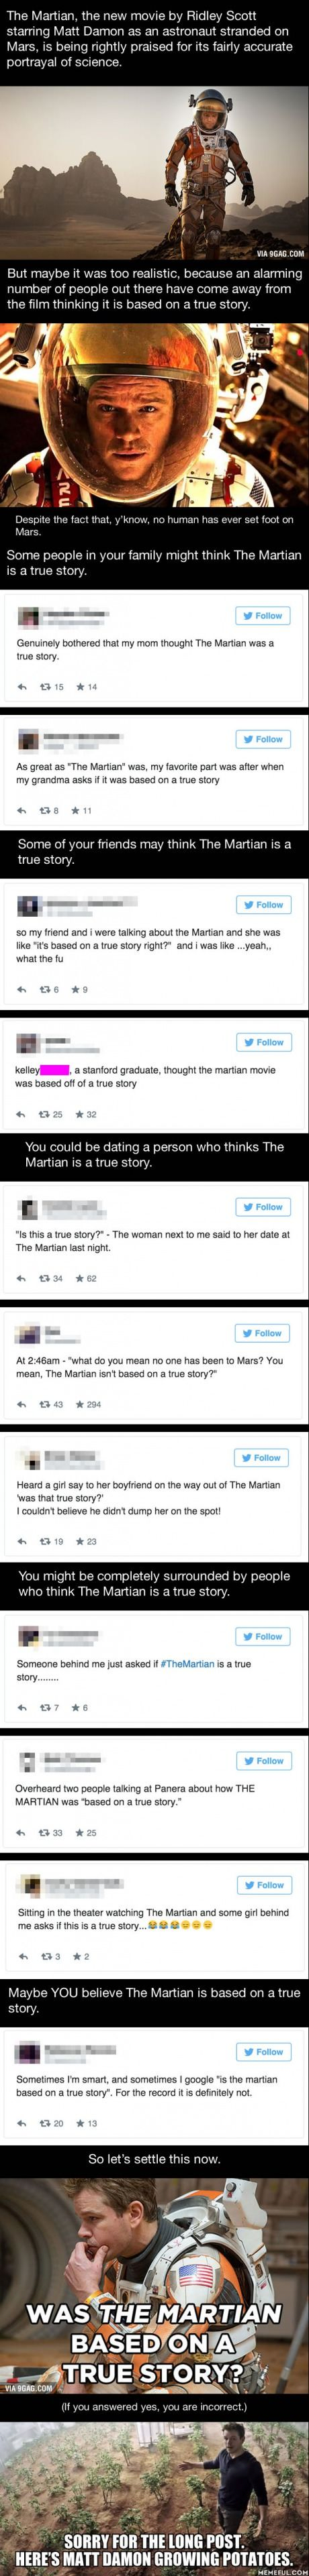 An Alarming Number Of People Think 'The Martian' Is Based On A True Story